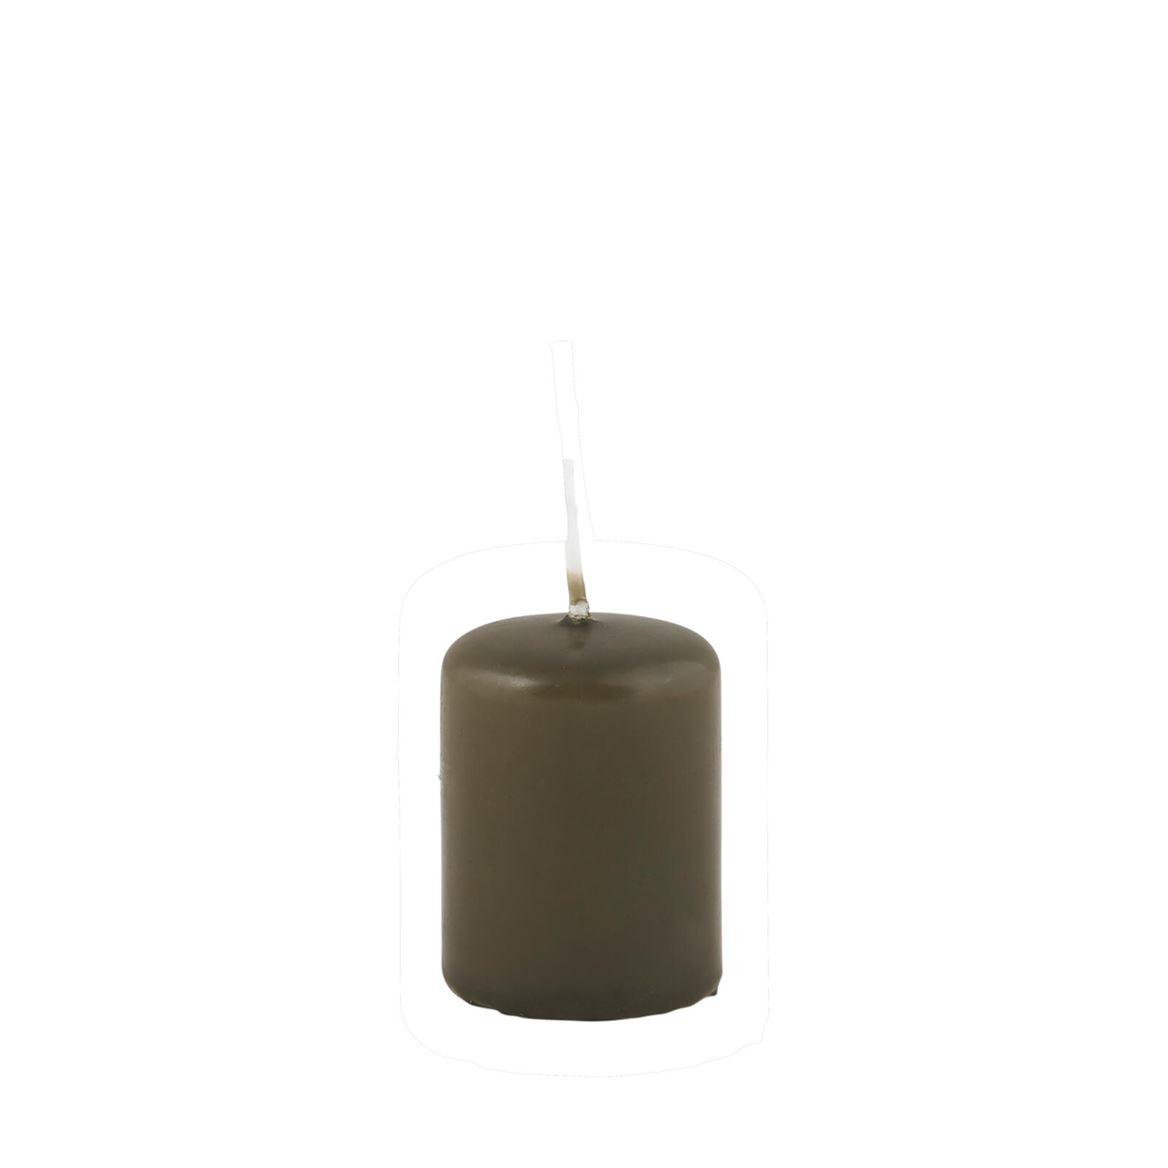 CILINDRO Bougie cylindrique vert H 5 cm; Ø 4 cm_cilindro-bougie-cylindrique-vert-h-5-cm;-ø-4-cm